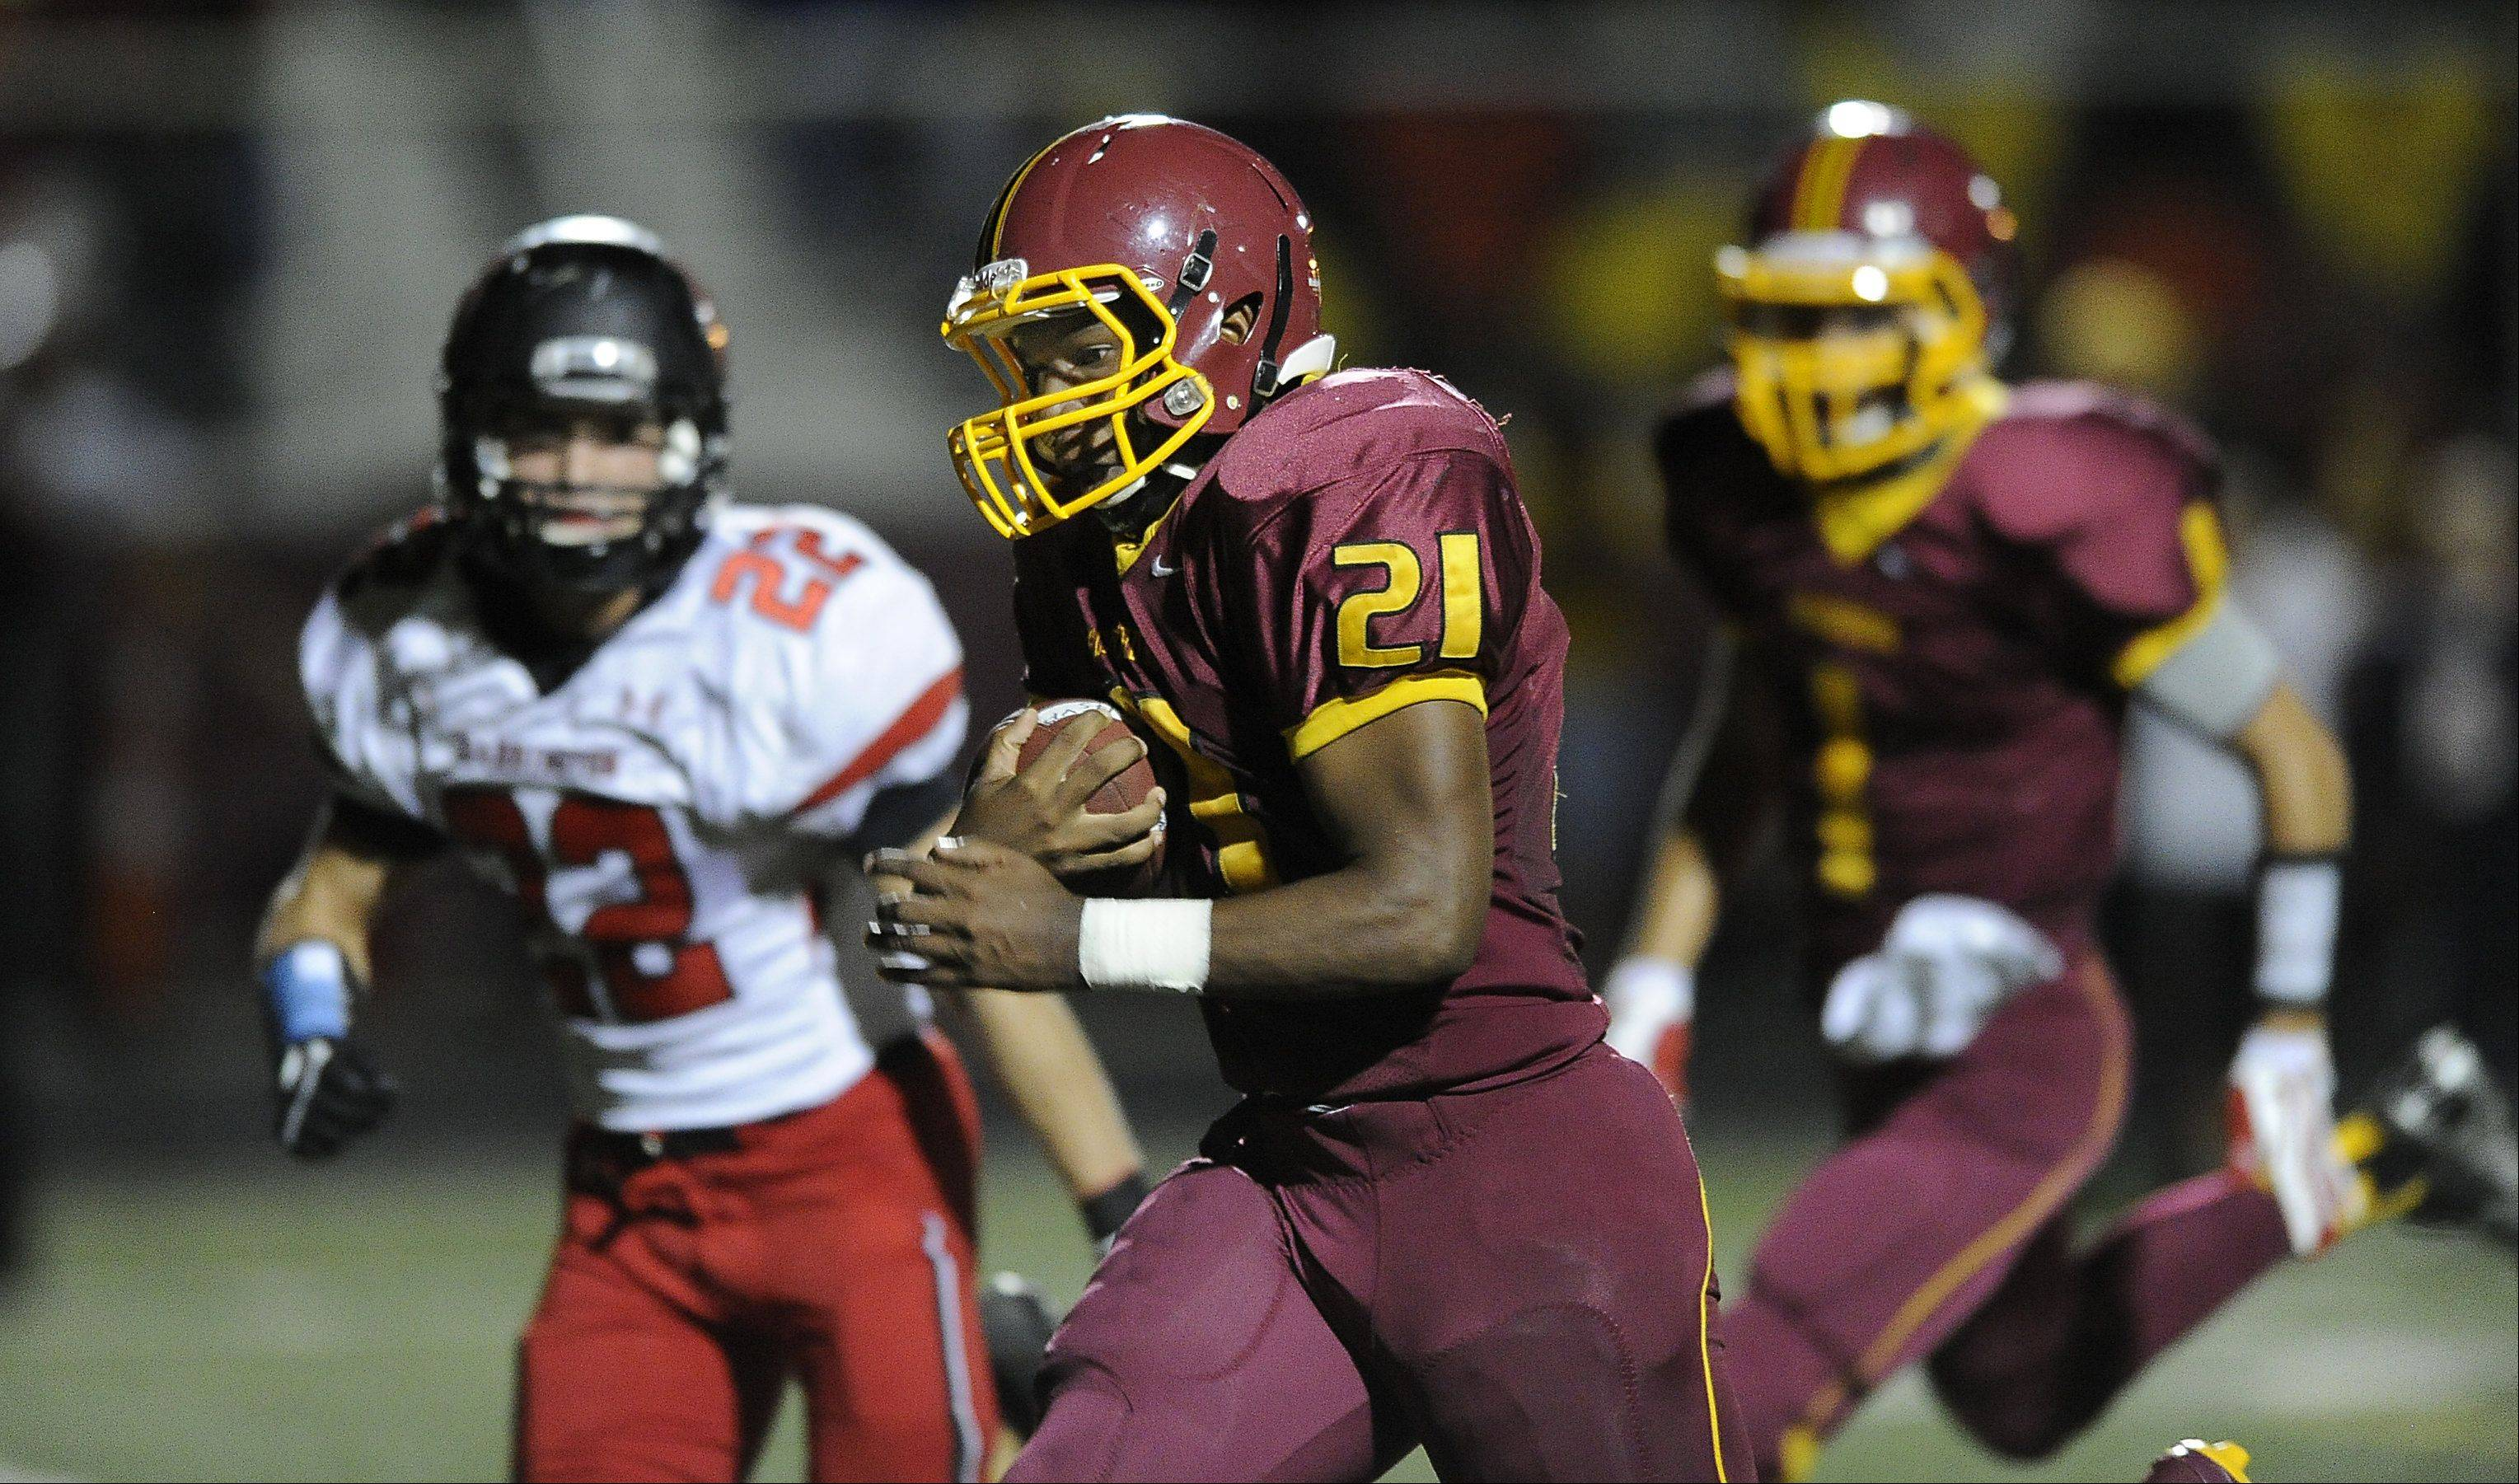 Schaumburg's Justice Macneal-Young runs in his second touchdown of the game in the second quarter.